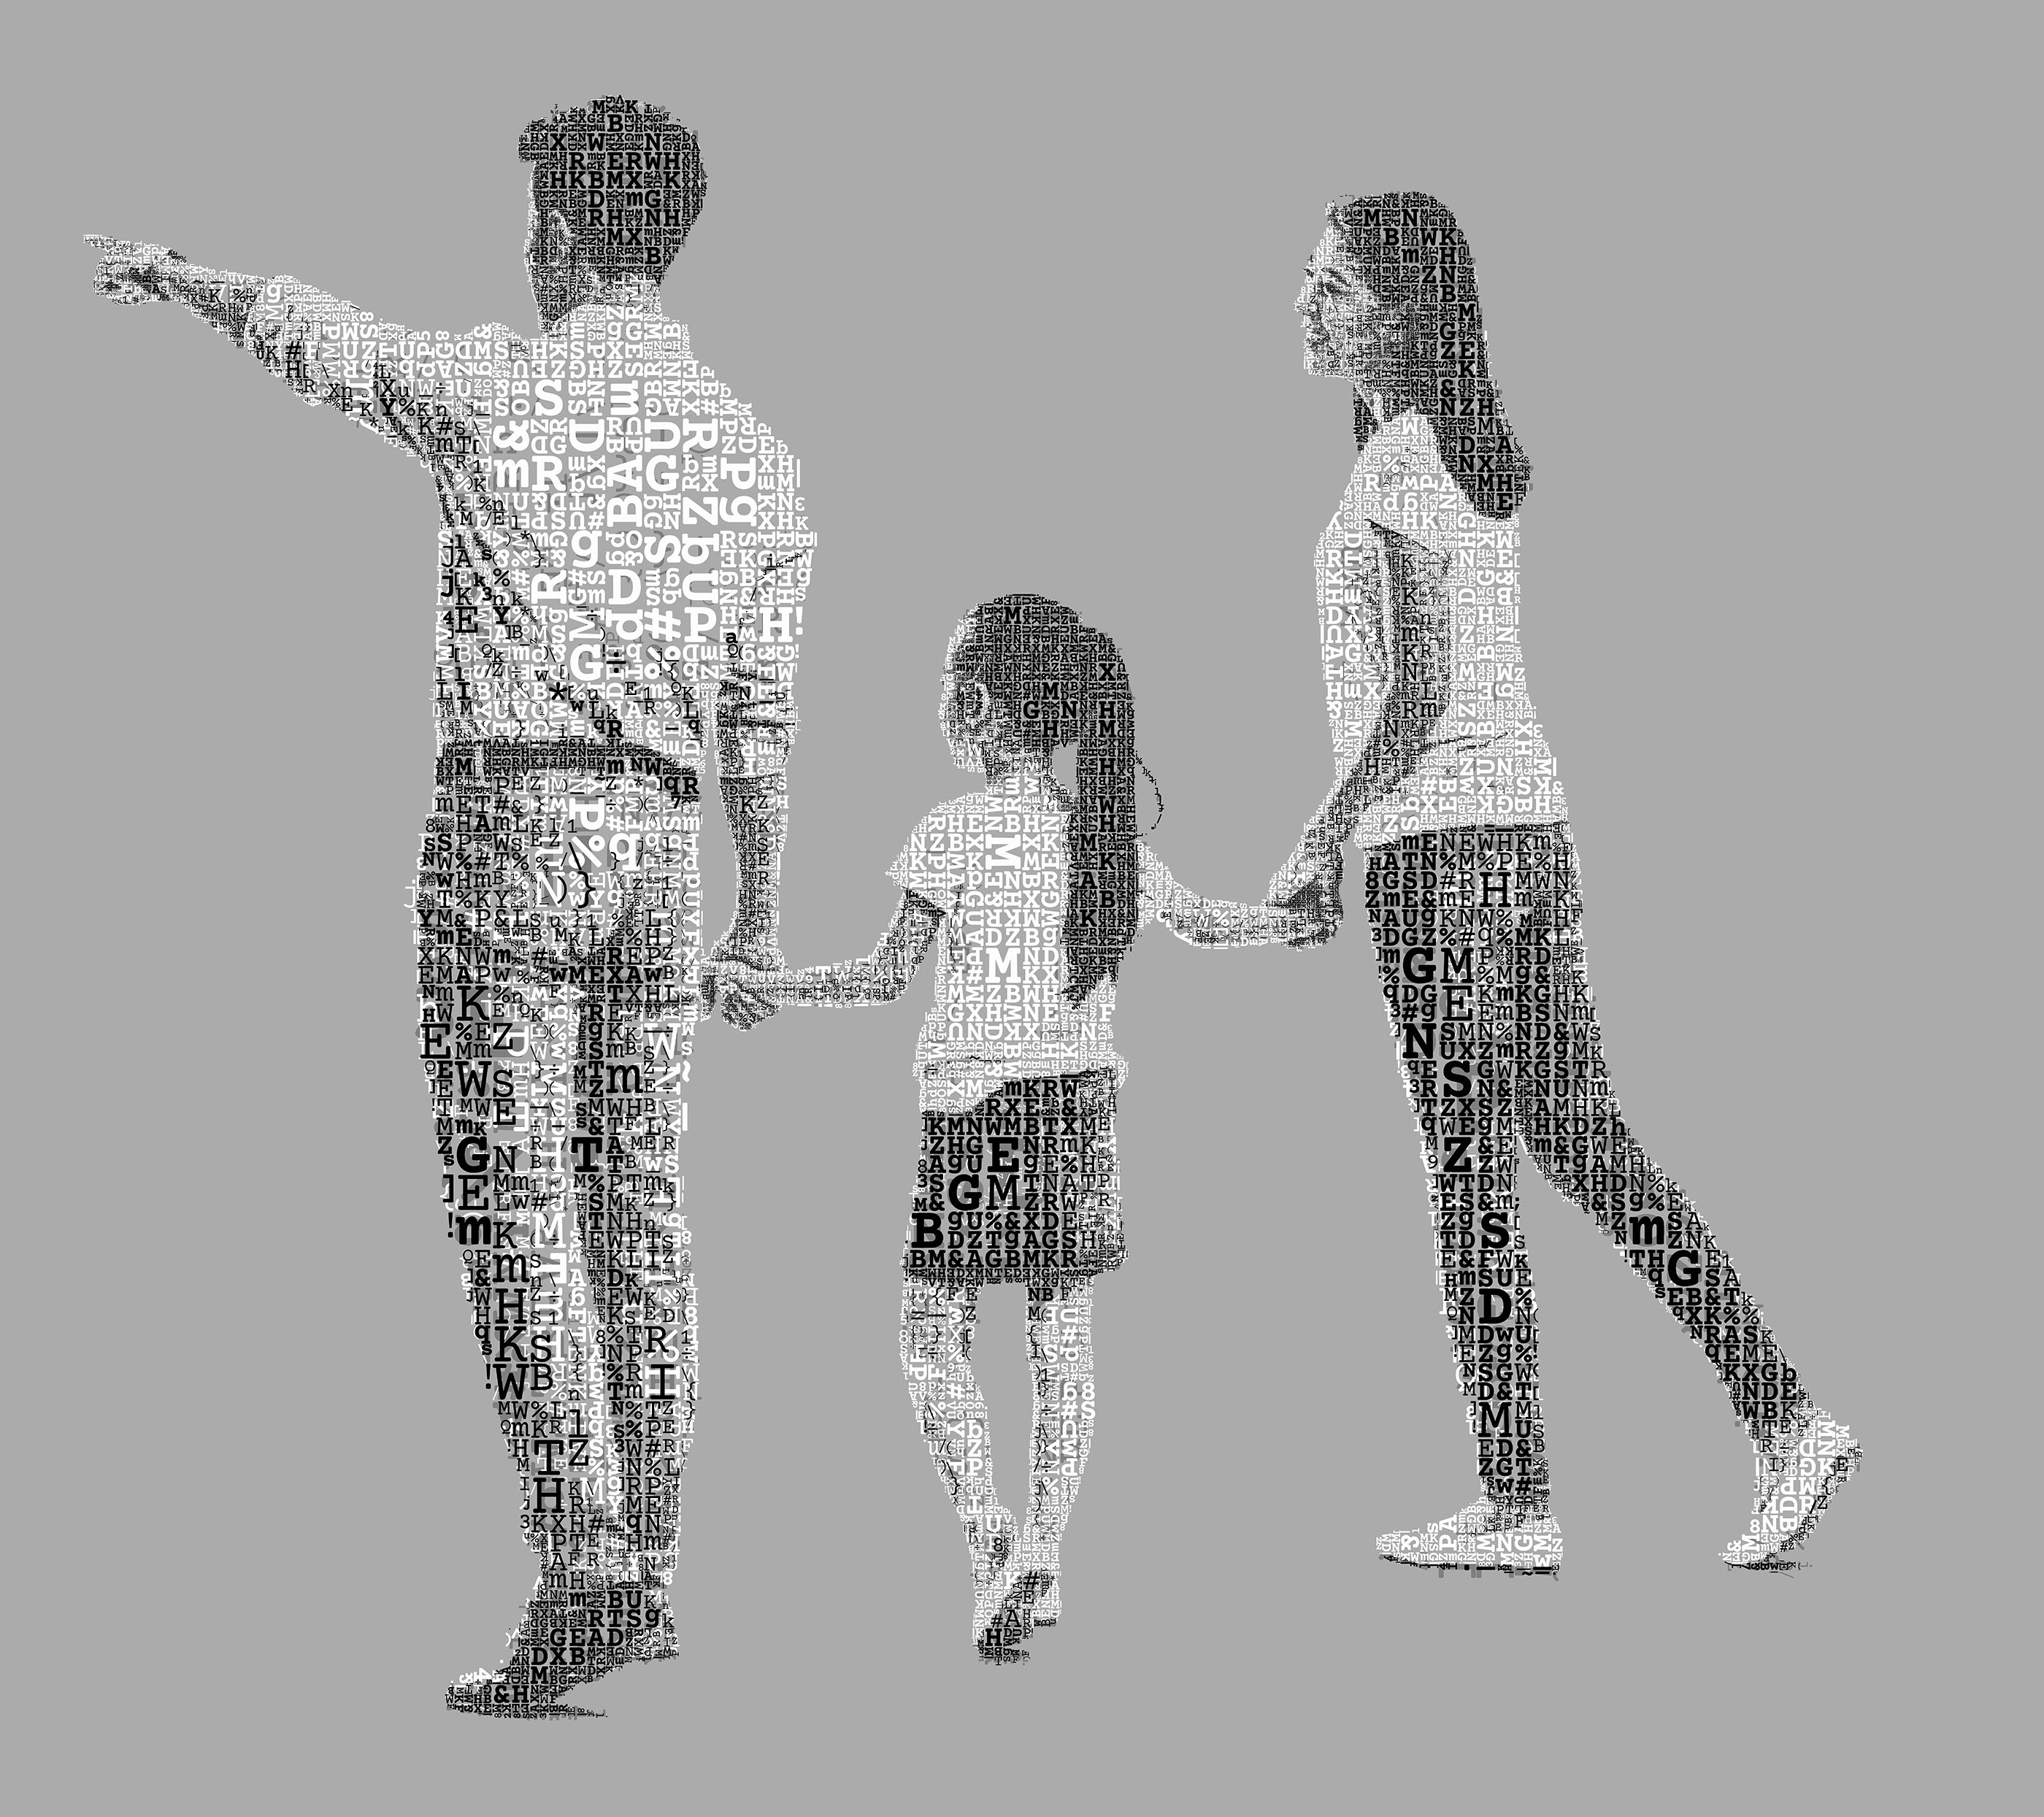 A family (back view). Mom, Dad and Daughter